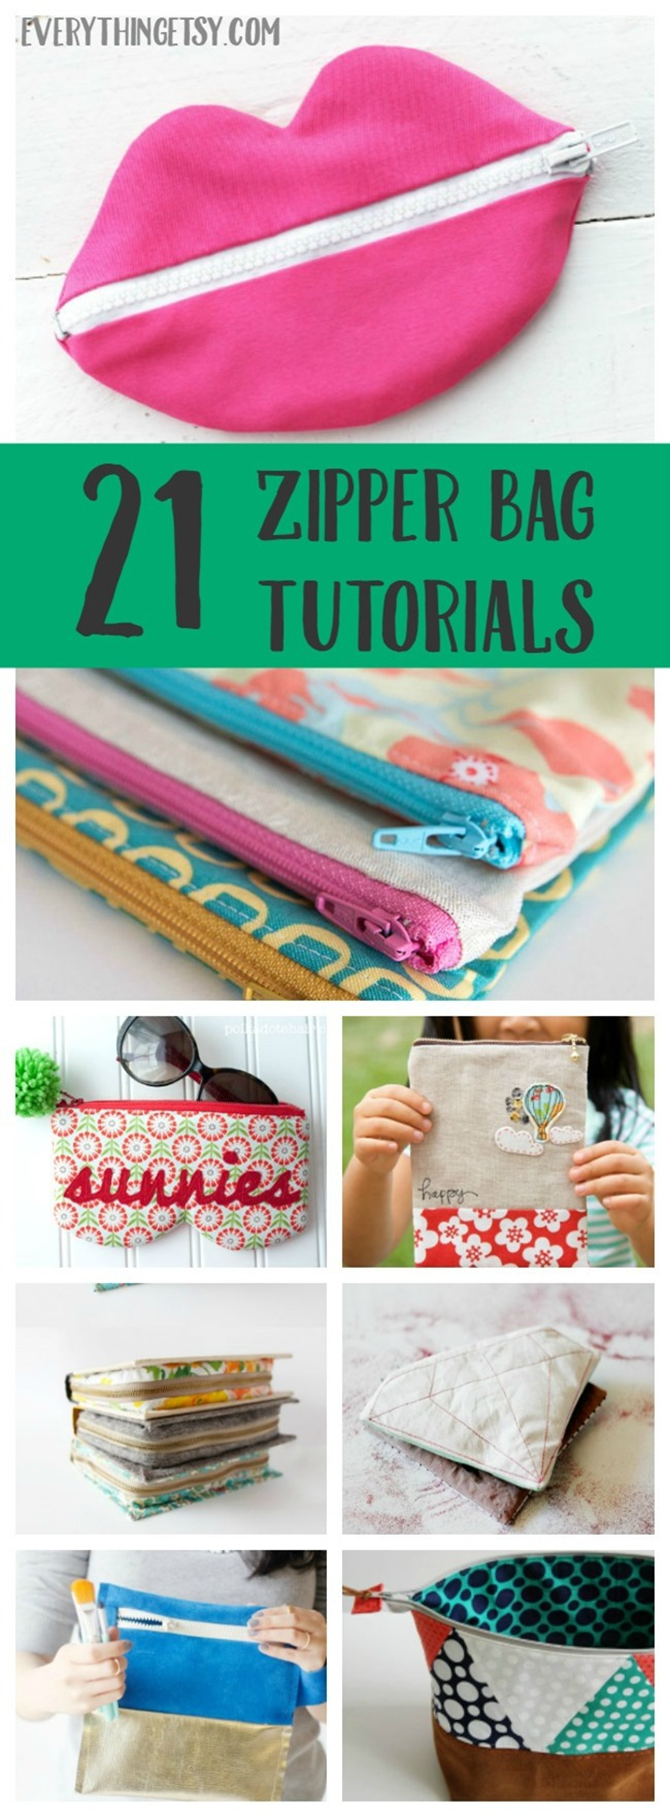 21 Zipper Bag Sewing Tutorials on EverythingEtsy